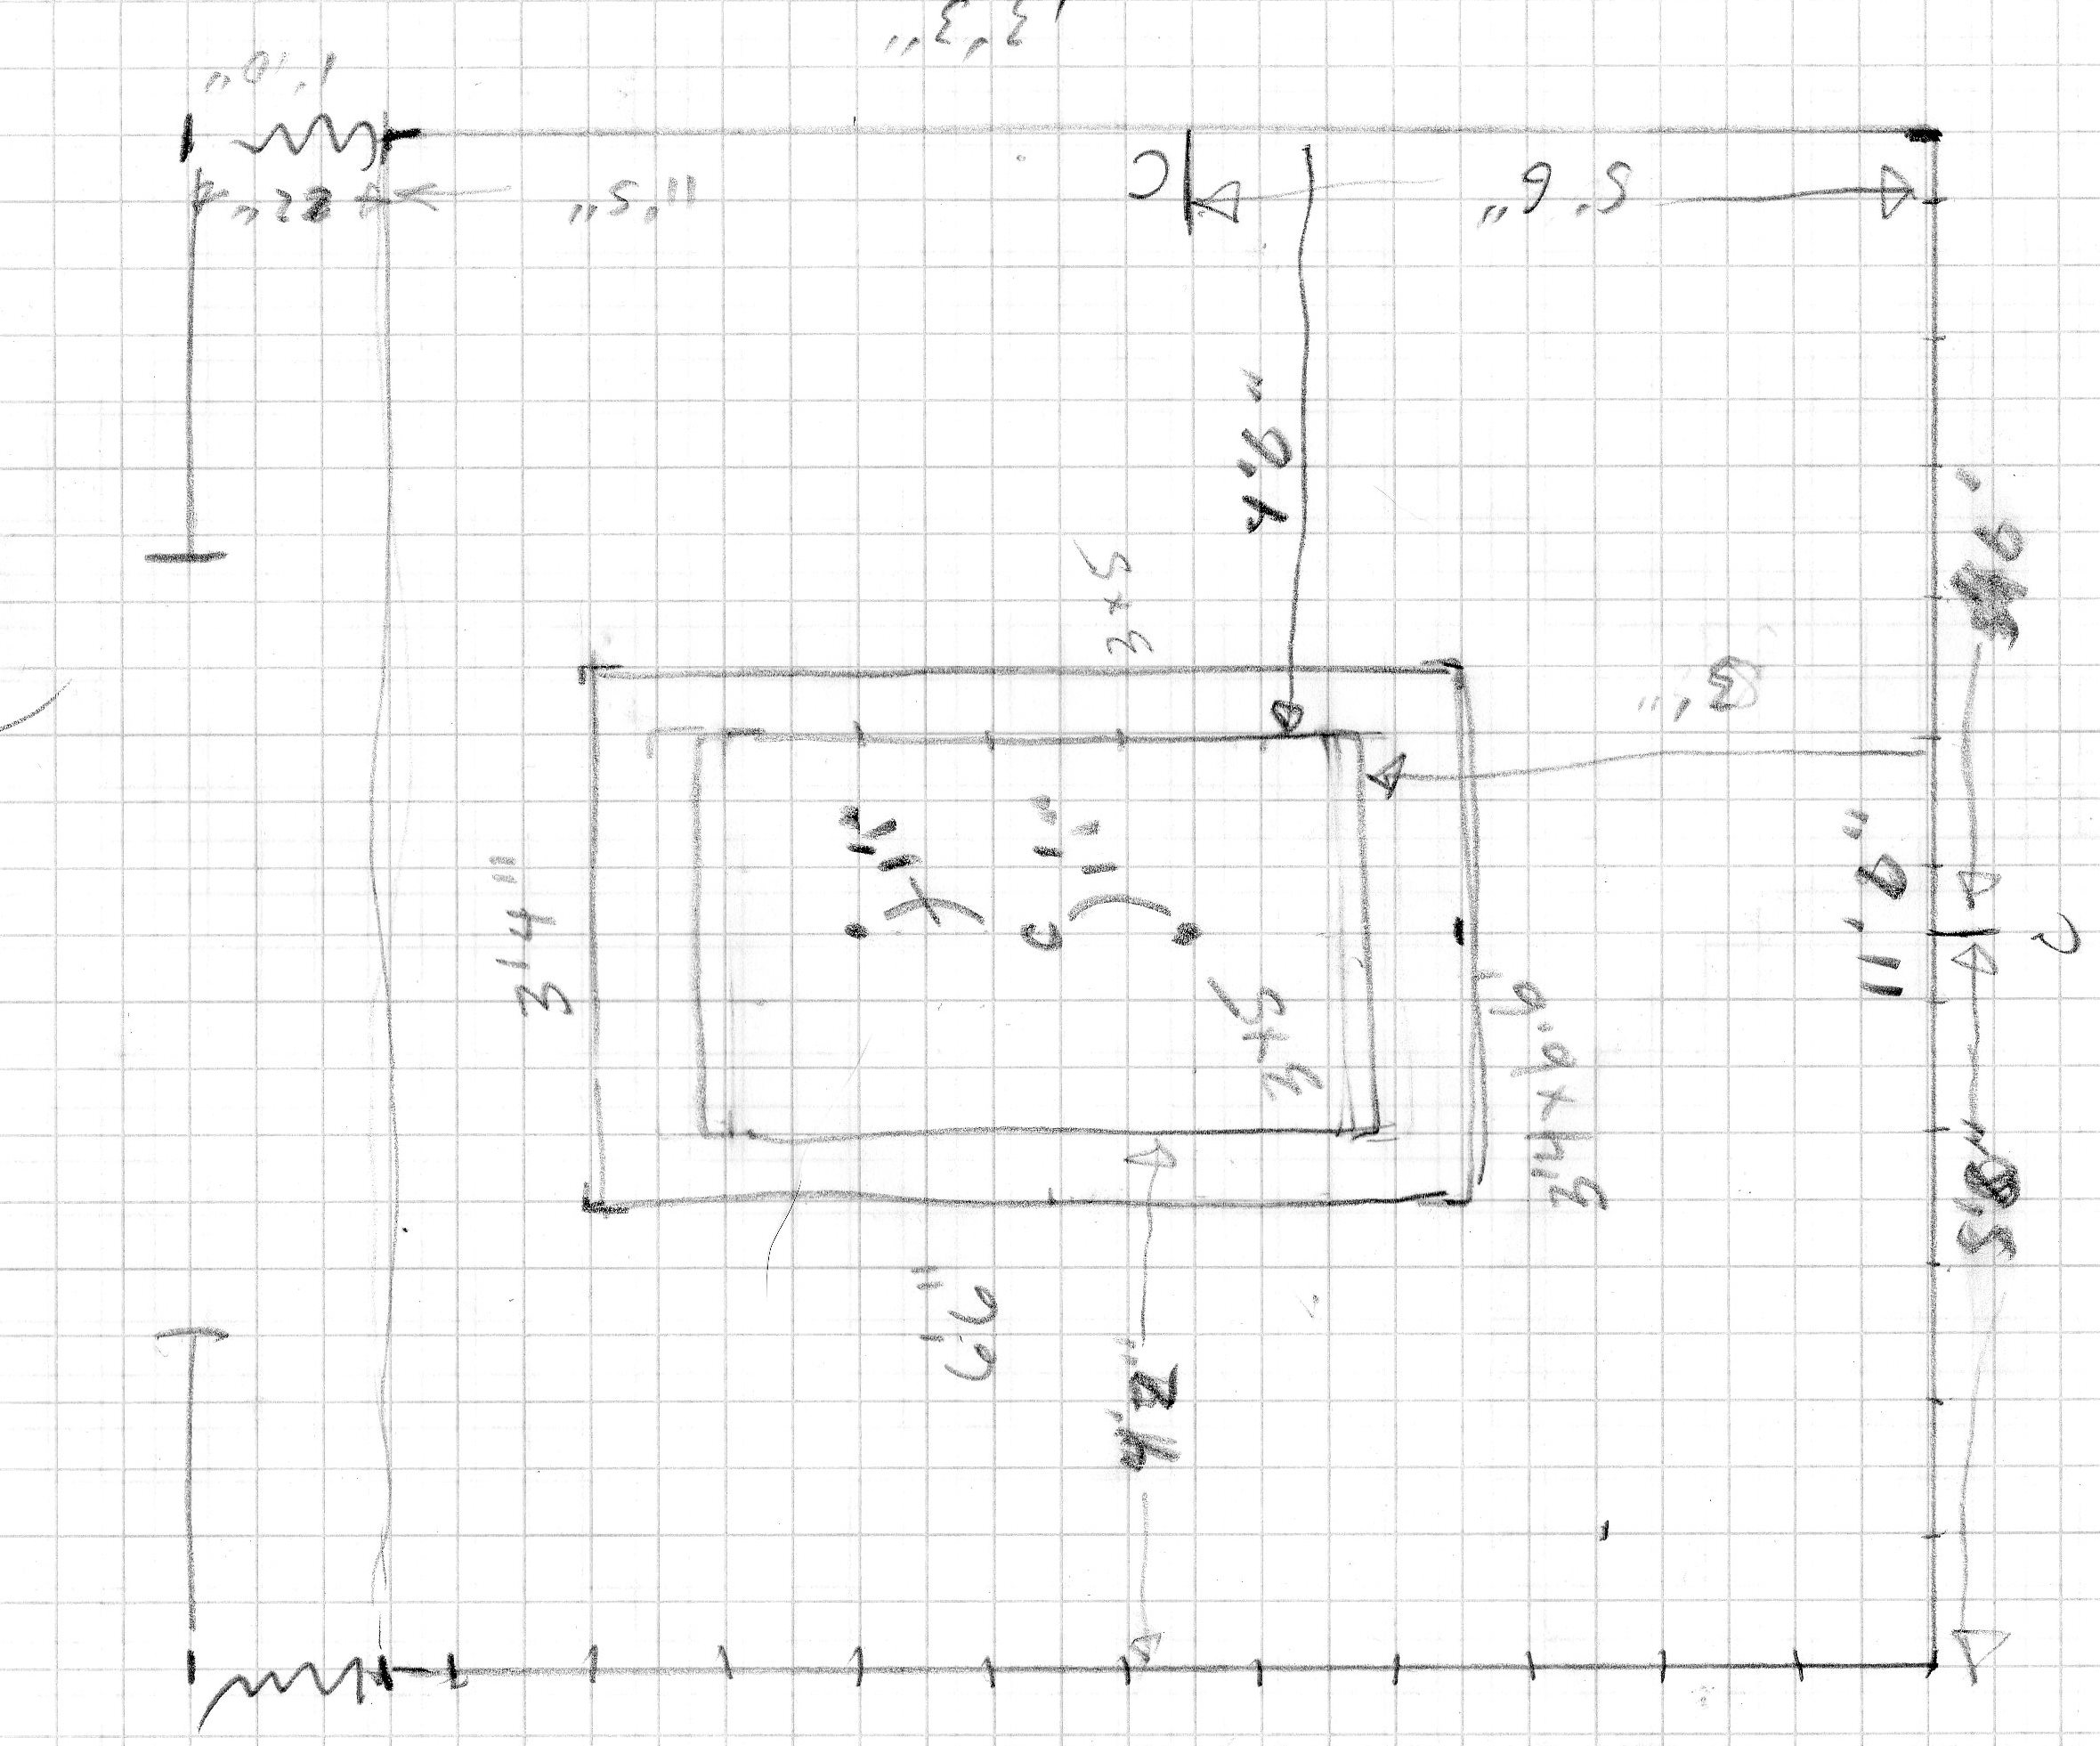 Pearl speciality paint simply rooms by design for Room design graph paper